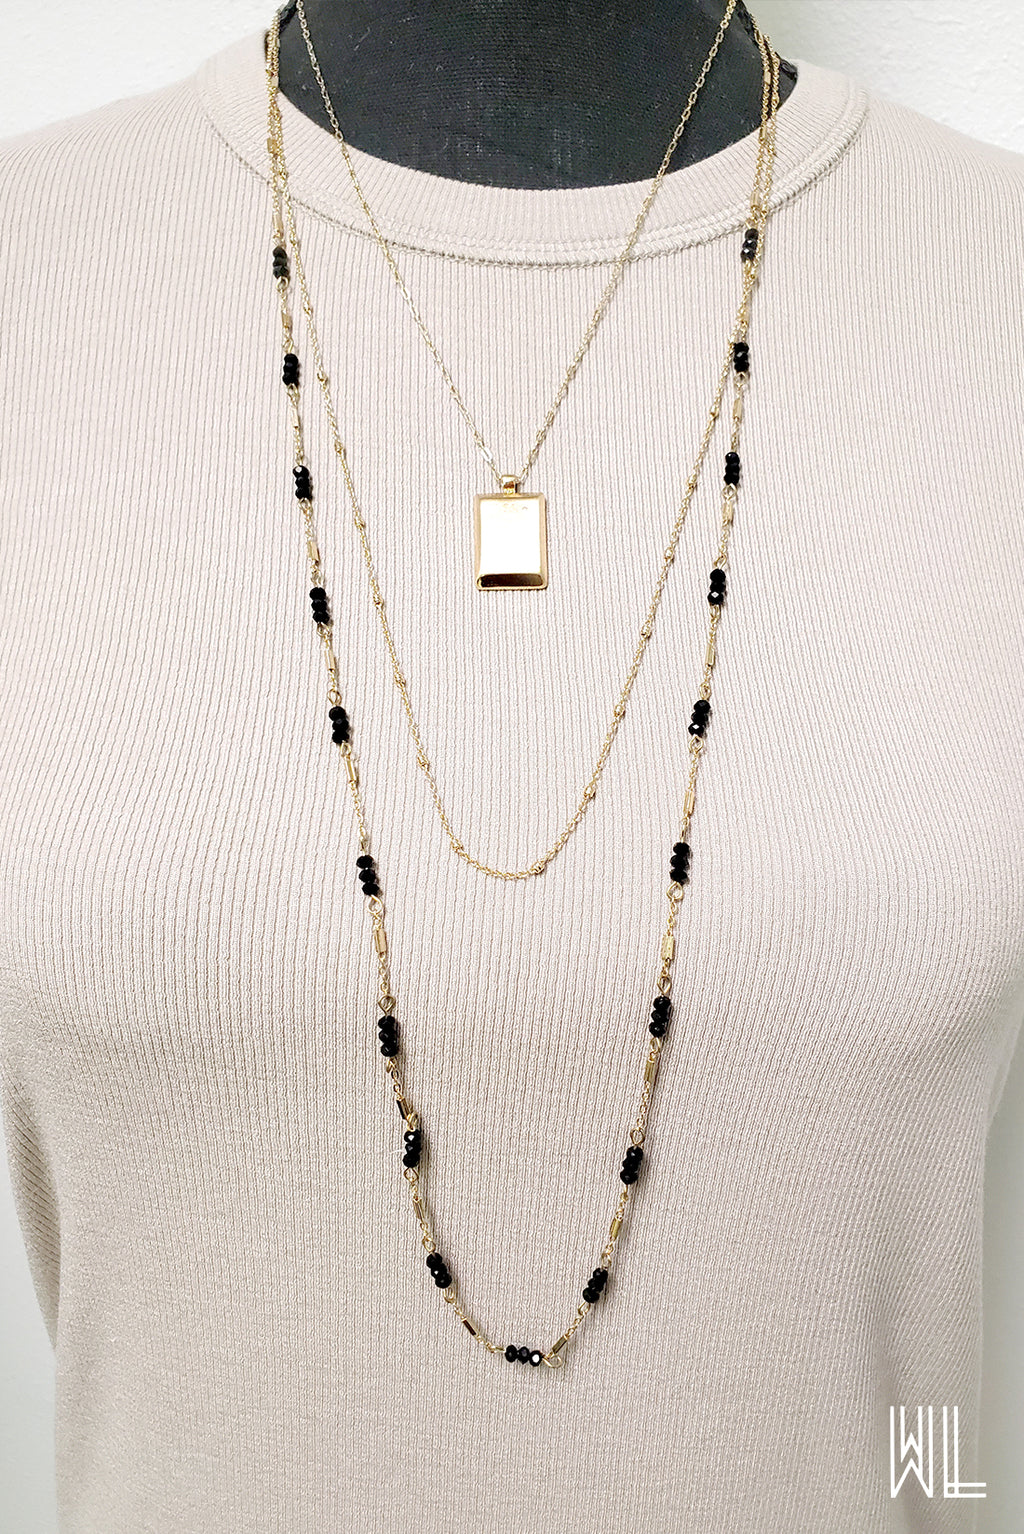 Gold Square Three Tier Necklace + Earrings